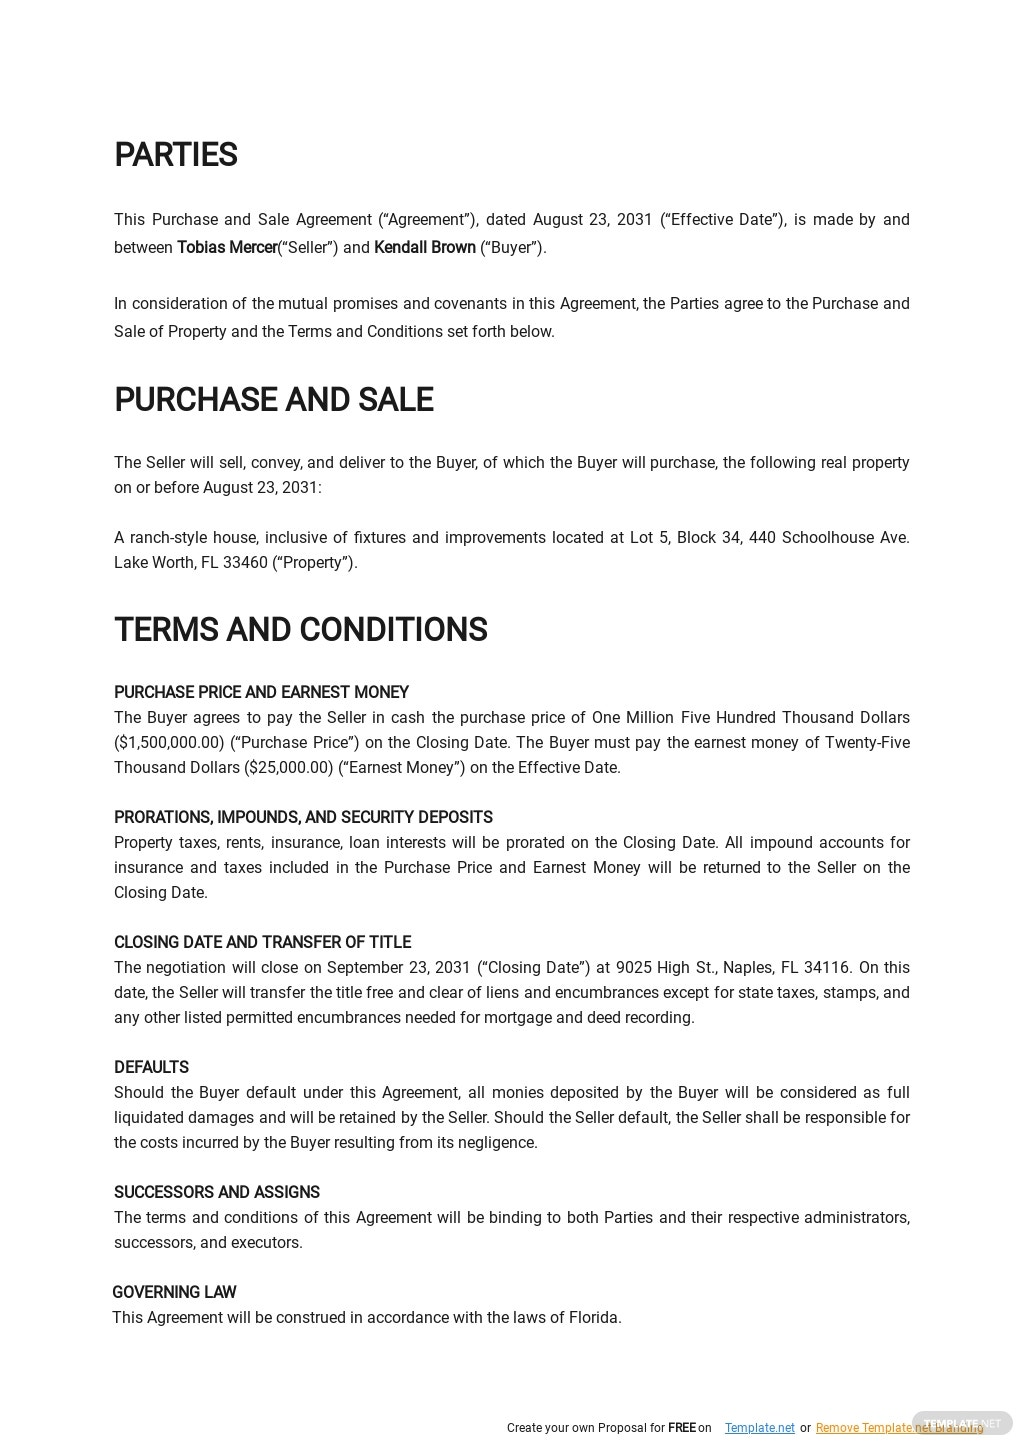 Purchase and Sale Agreement Template 1.jpe